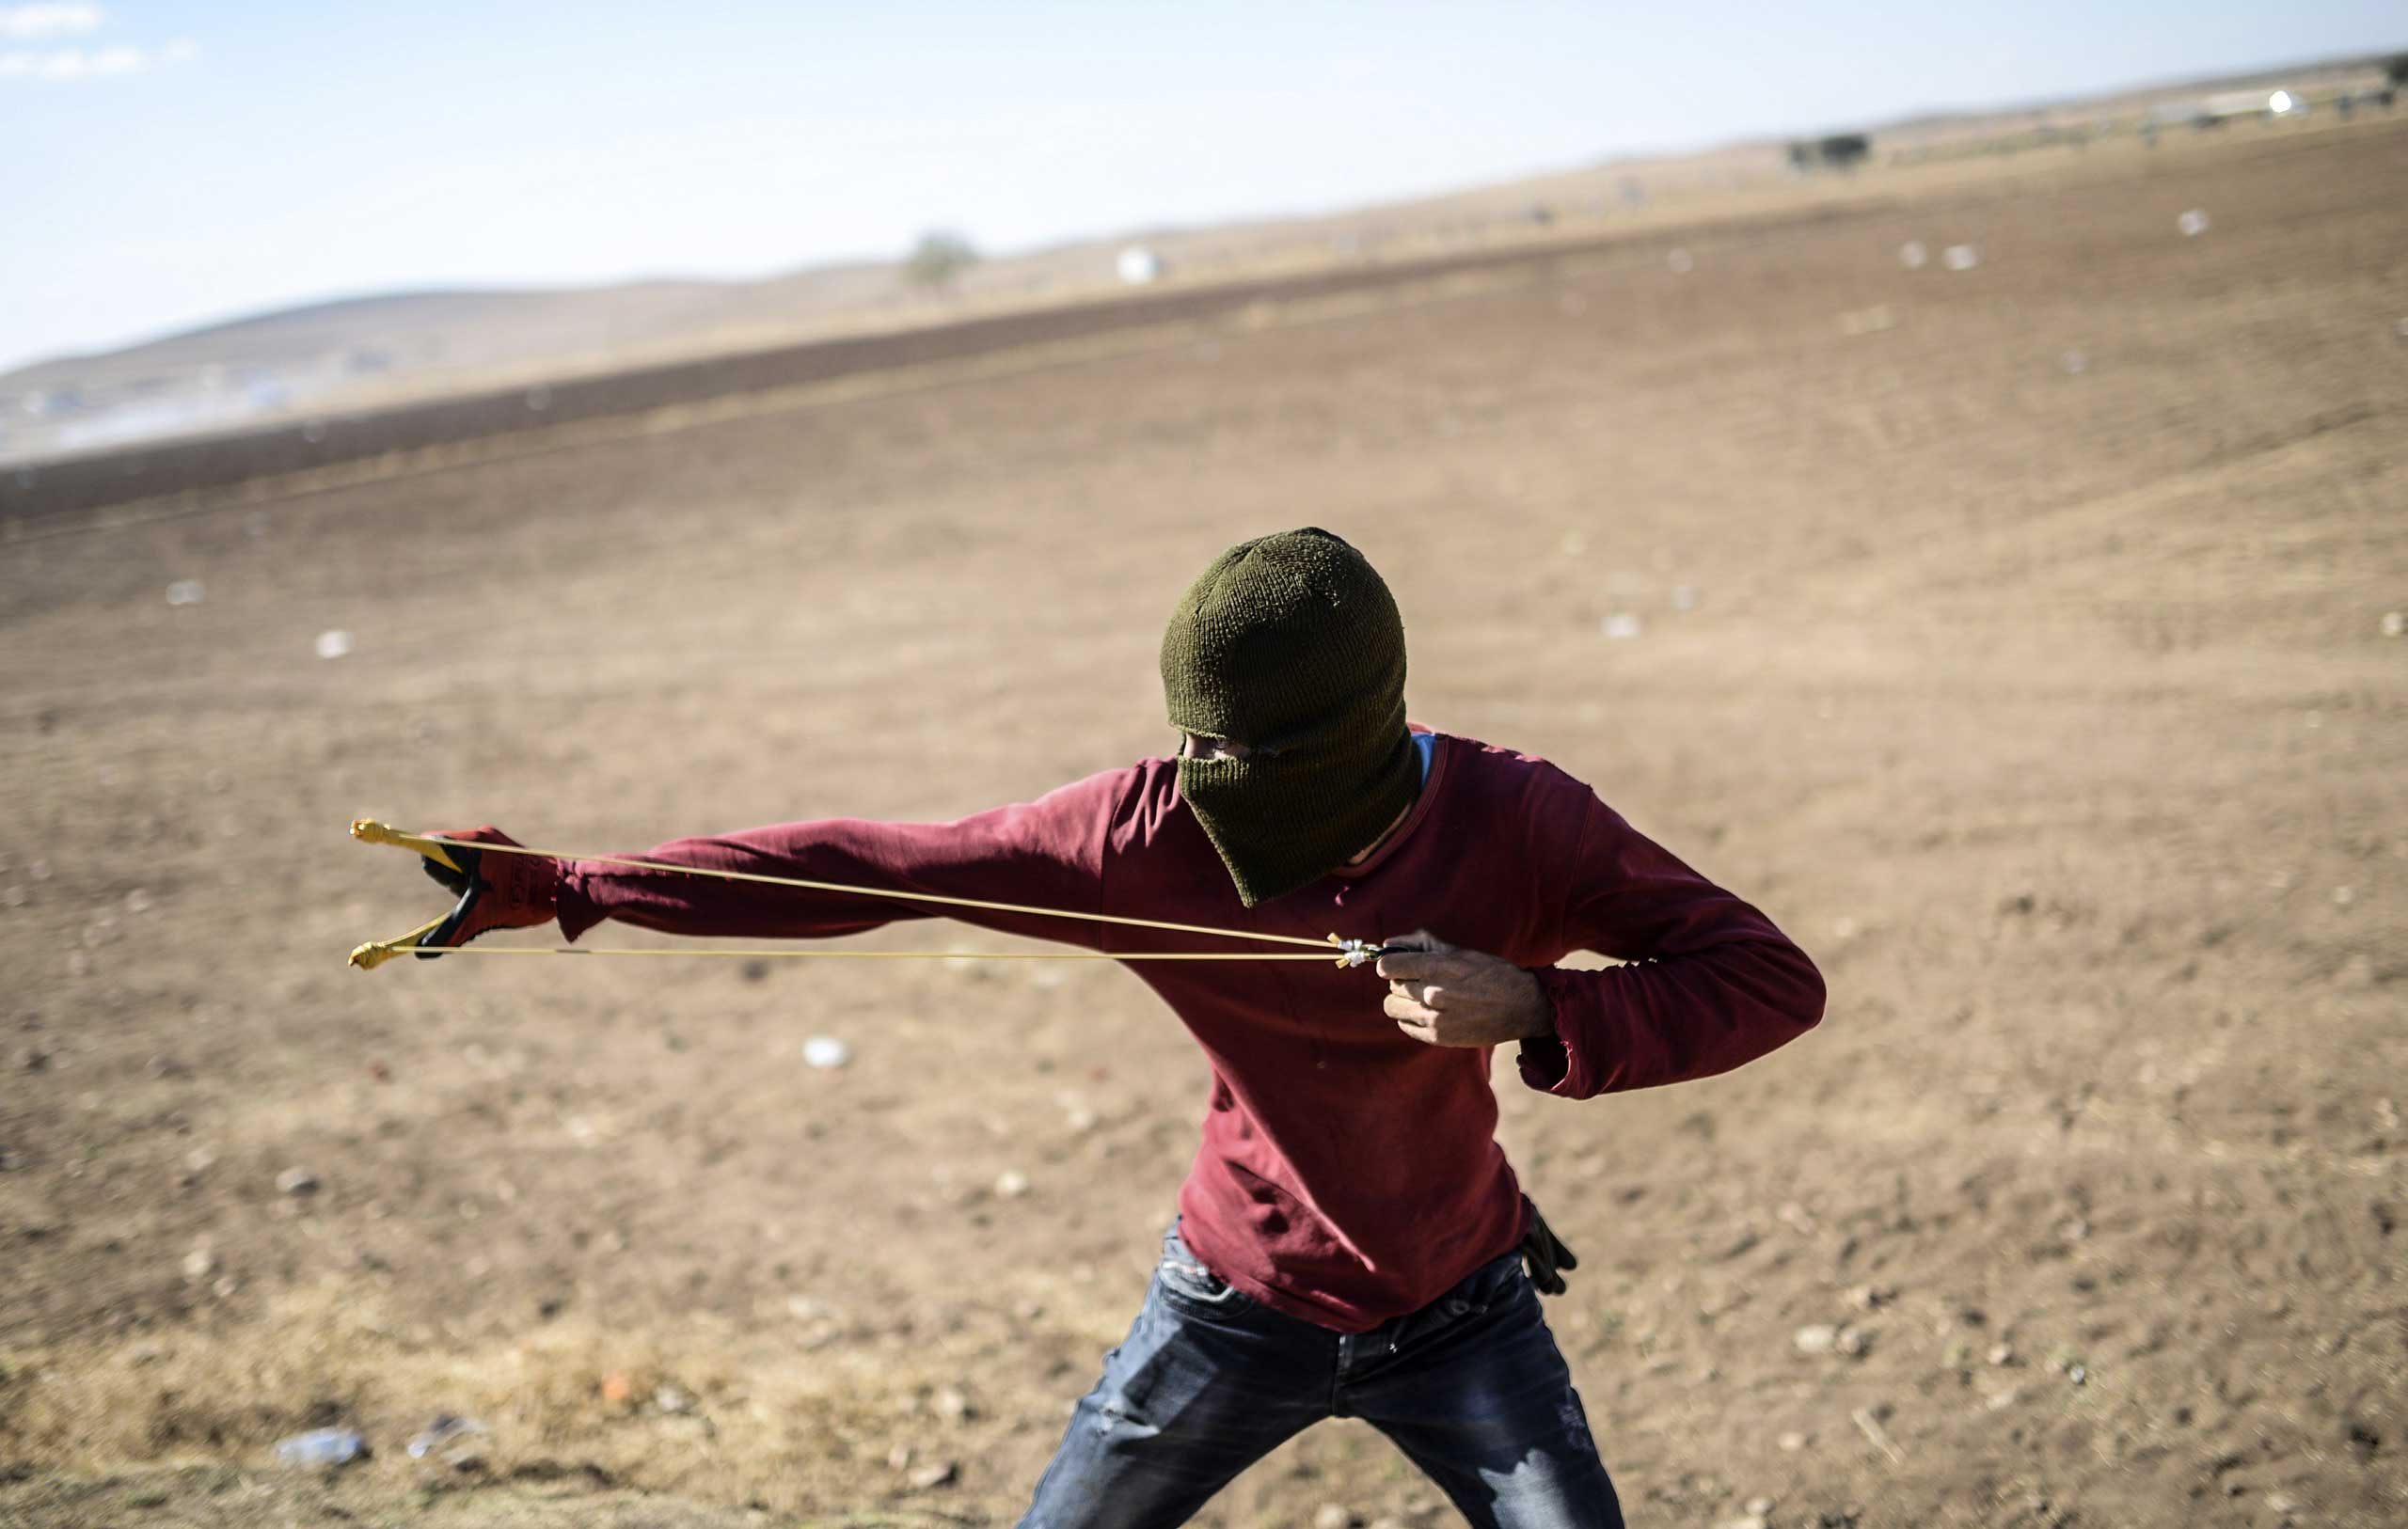 A Kurdish protestor uses a sling shot against Turkish soldiers near the Syrian border after Turkish authorities temporarily closed the border at the southeastern town of Suruc in Sanliurfa province, on Sept. 22, 2014.